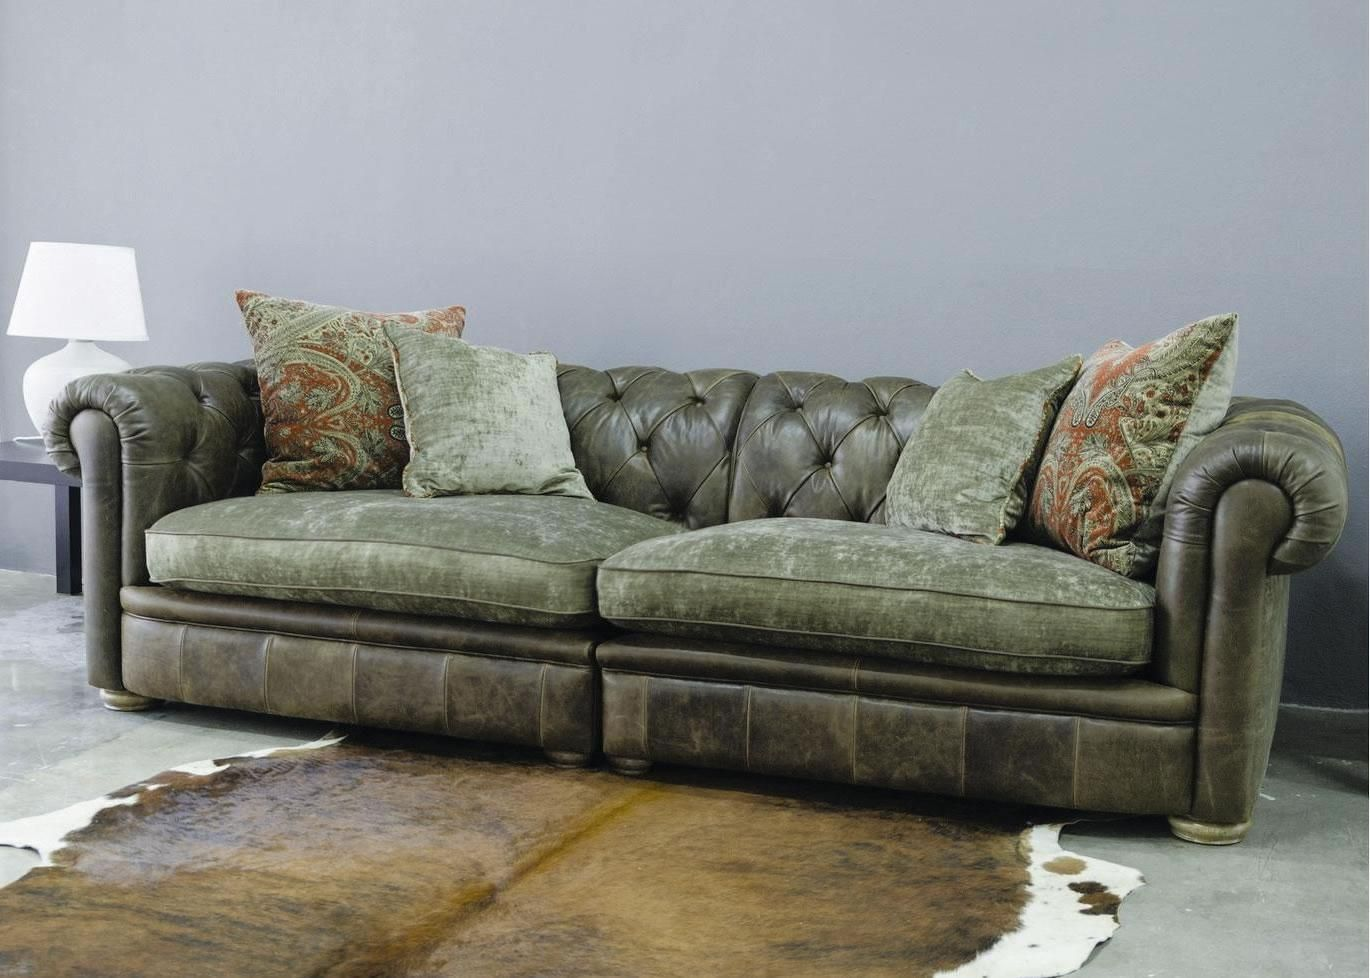 572 Reclining Sectional Sofa With Chaise By Franklin Chesterfield Leather Sofas In